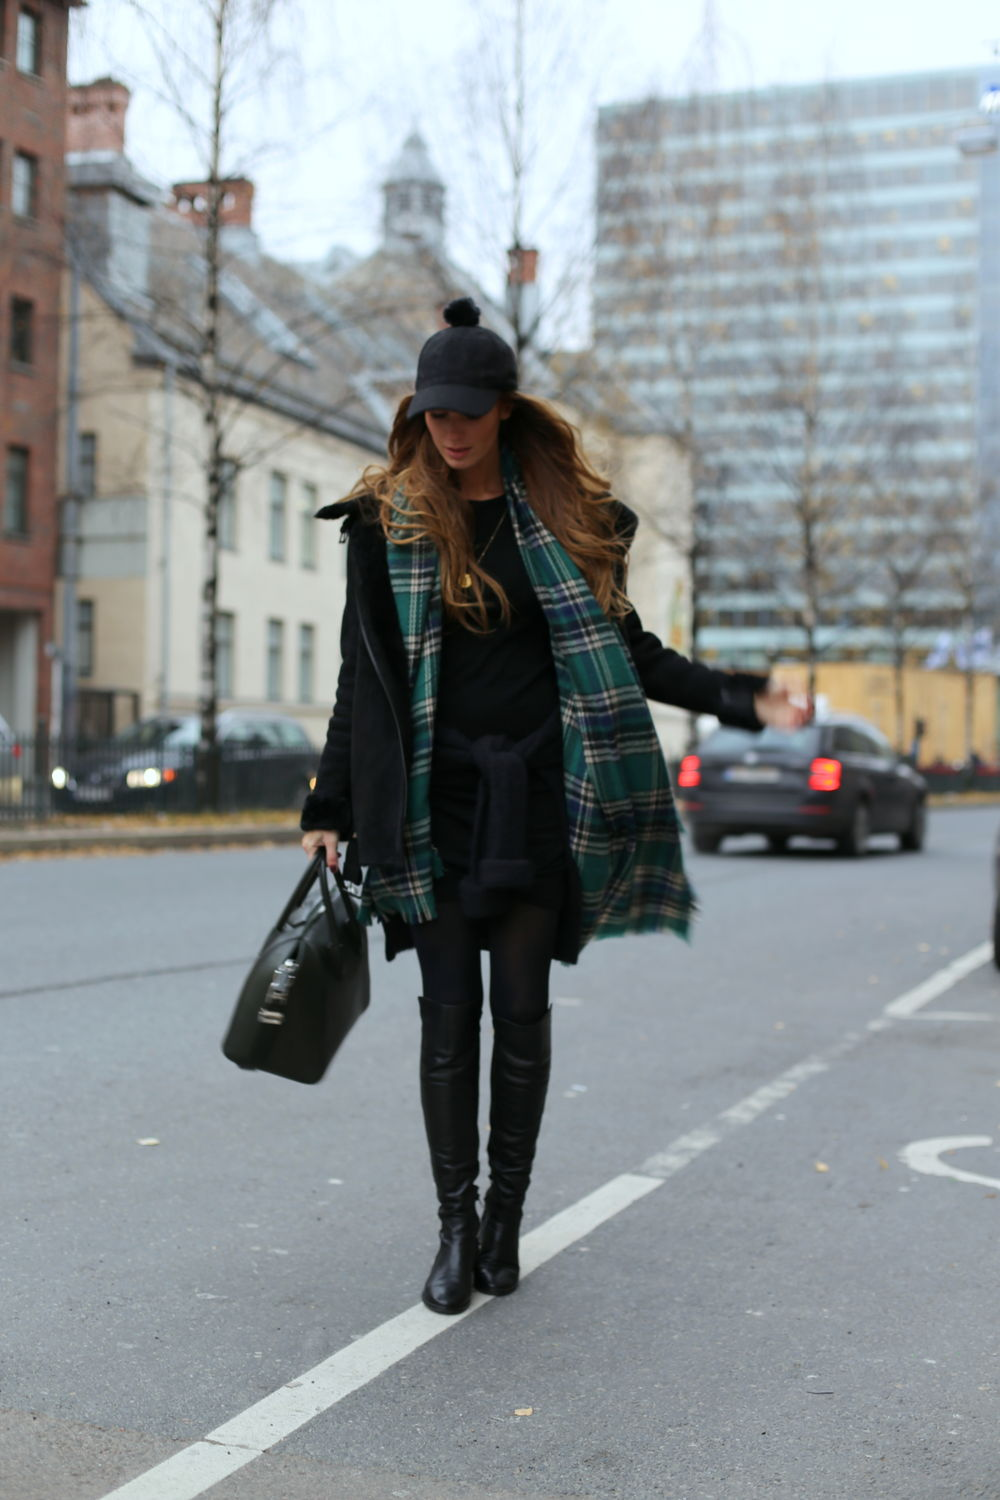 Benedichte is wearing a black coat and jumper from Just Female, skirt from from Woolland, scarf and hat from BikBok and the bag is from Givenchy